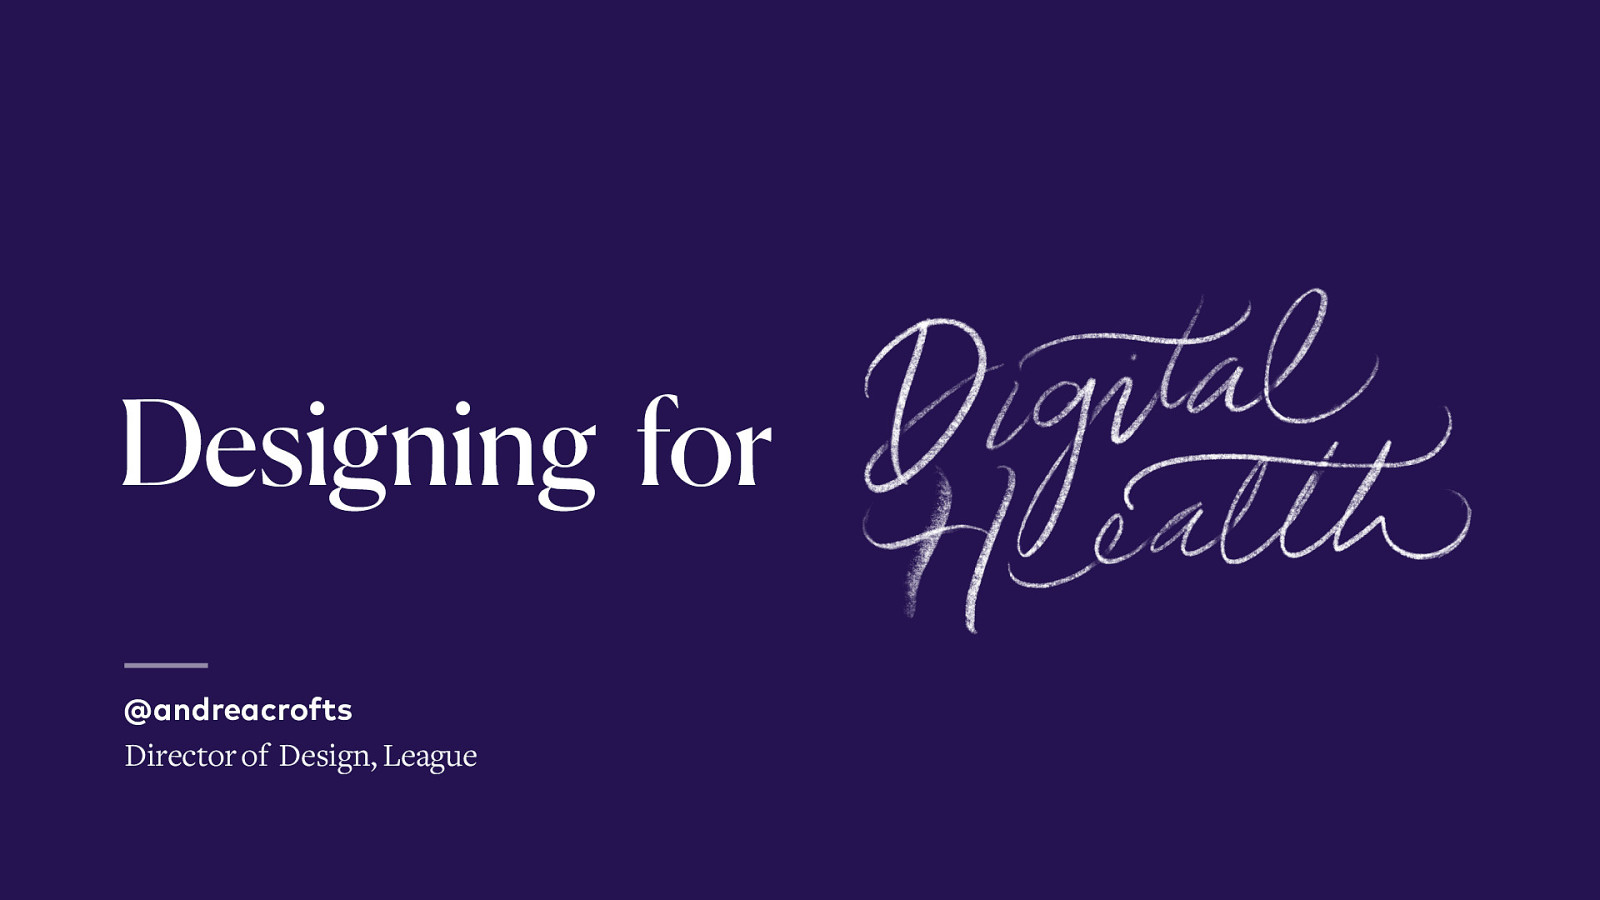 Designing for Digital Health